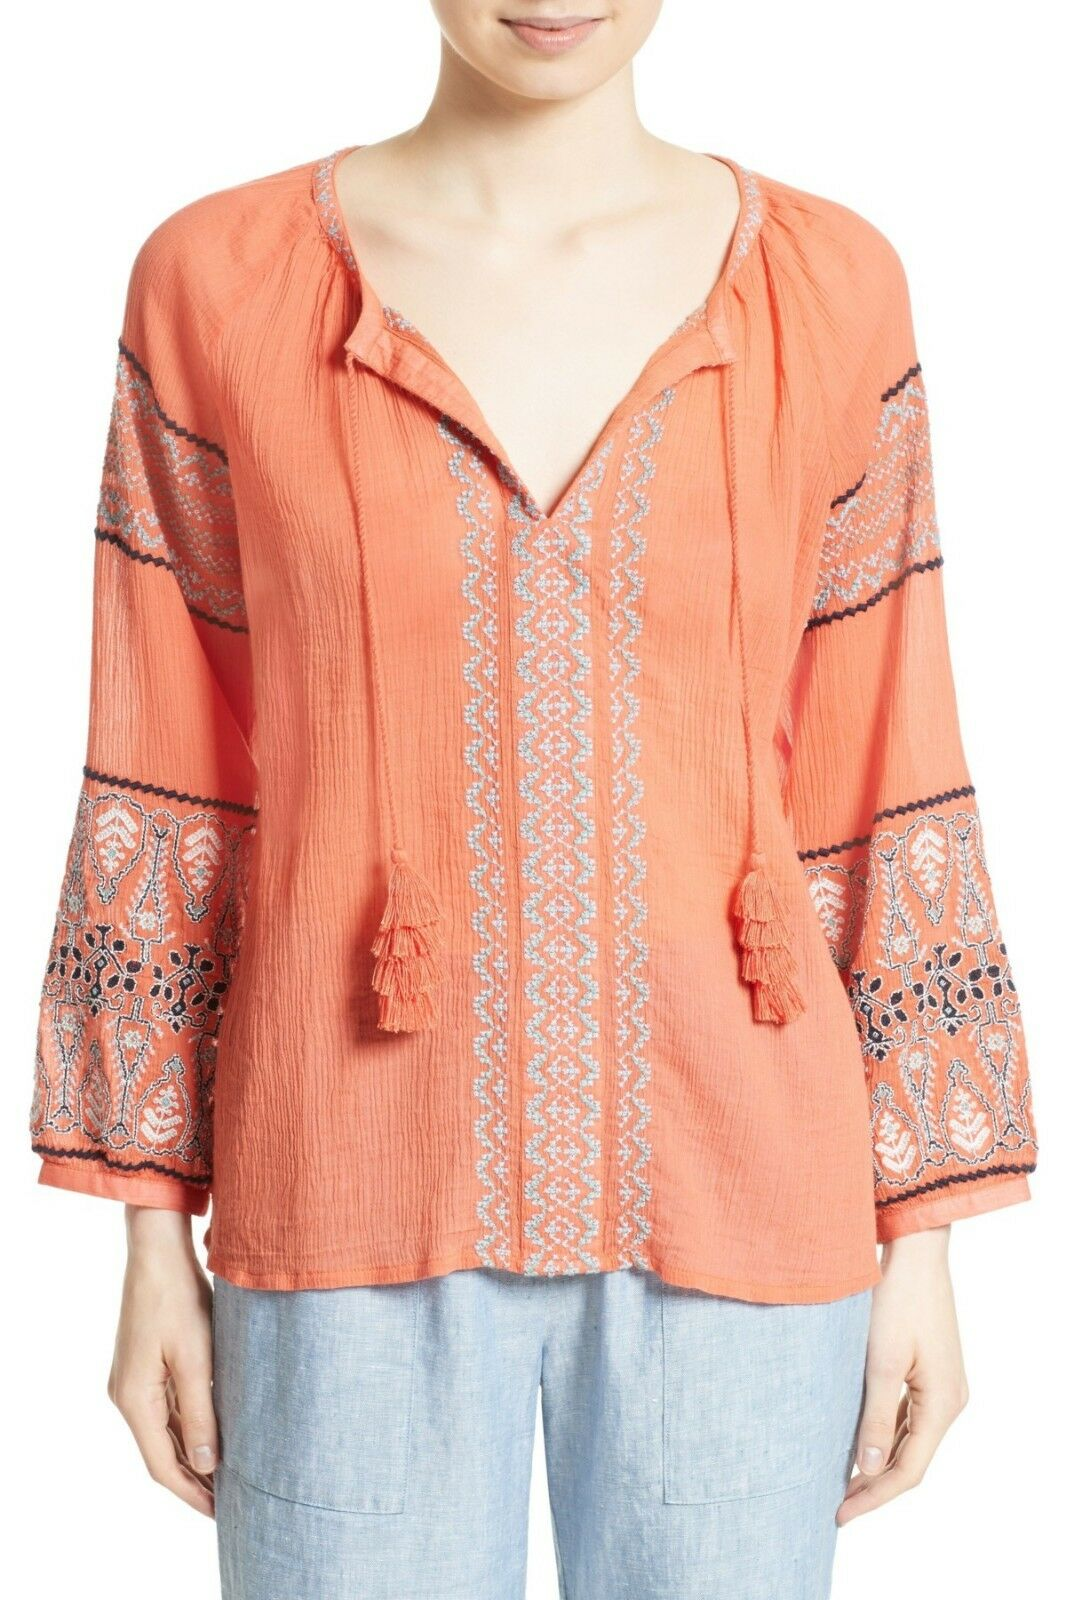 NWT- Joie Nelida Embroidered Gauzey-Cotton Tunic Blouse, Blood orange - Small